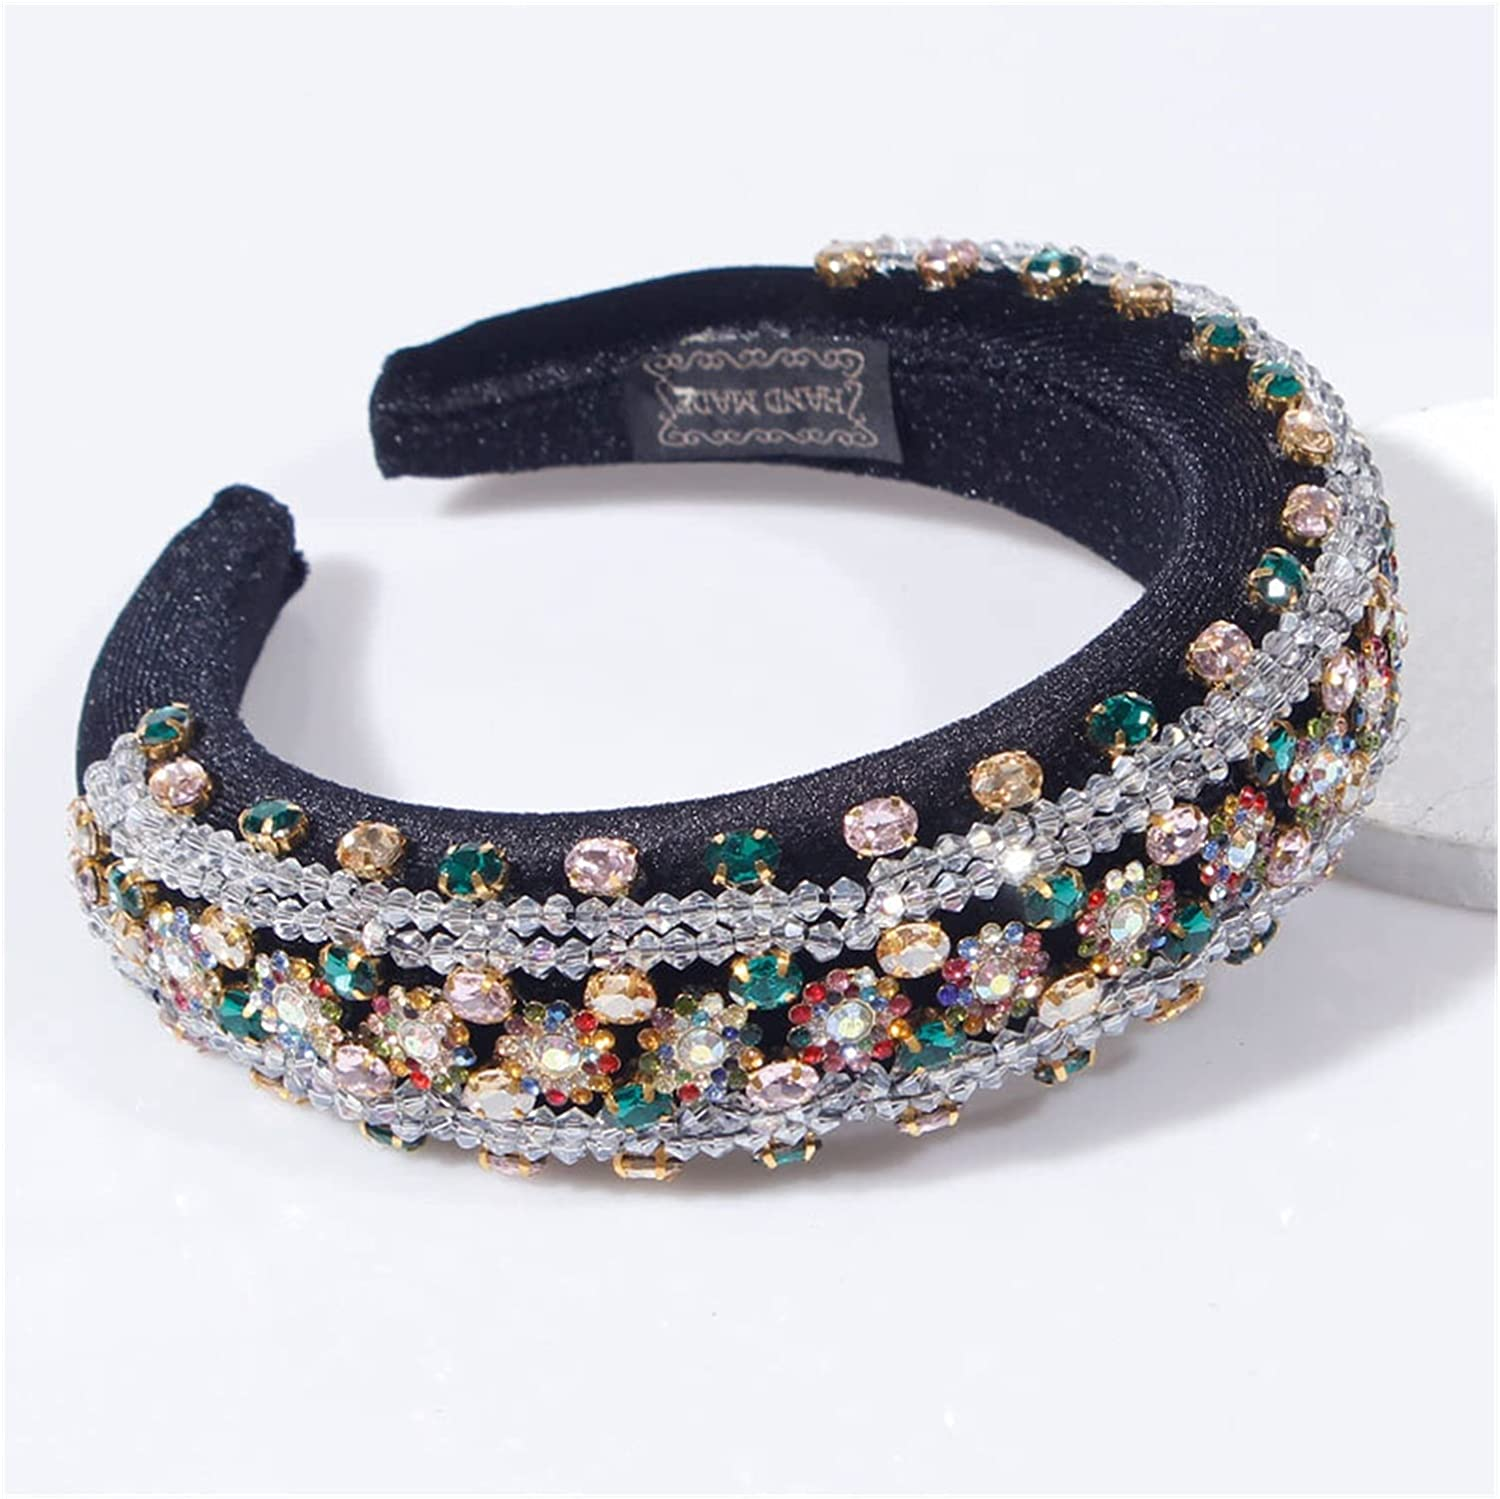 JIAQ 4 Styles White Crystal Baroque Rhinestones Padded Headband Party Wedding Hair Hoop for Women Girls Hair Accessories Headpieces (Color : C)